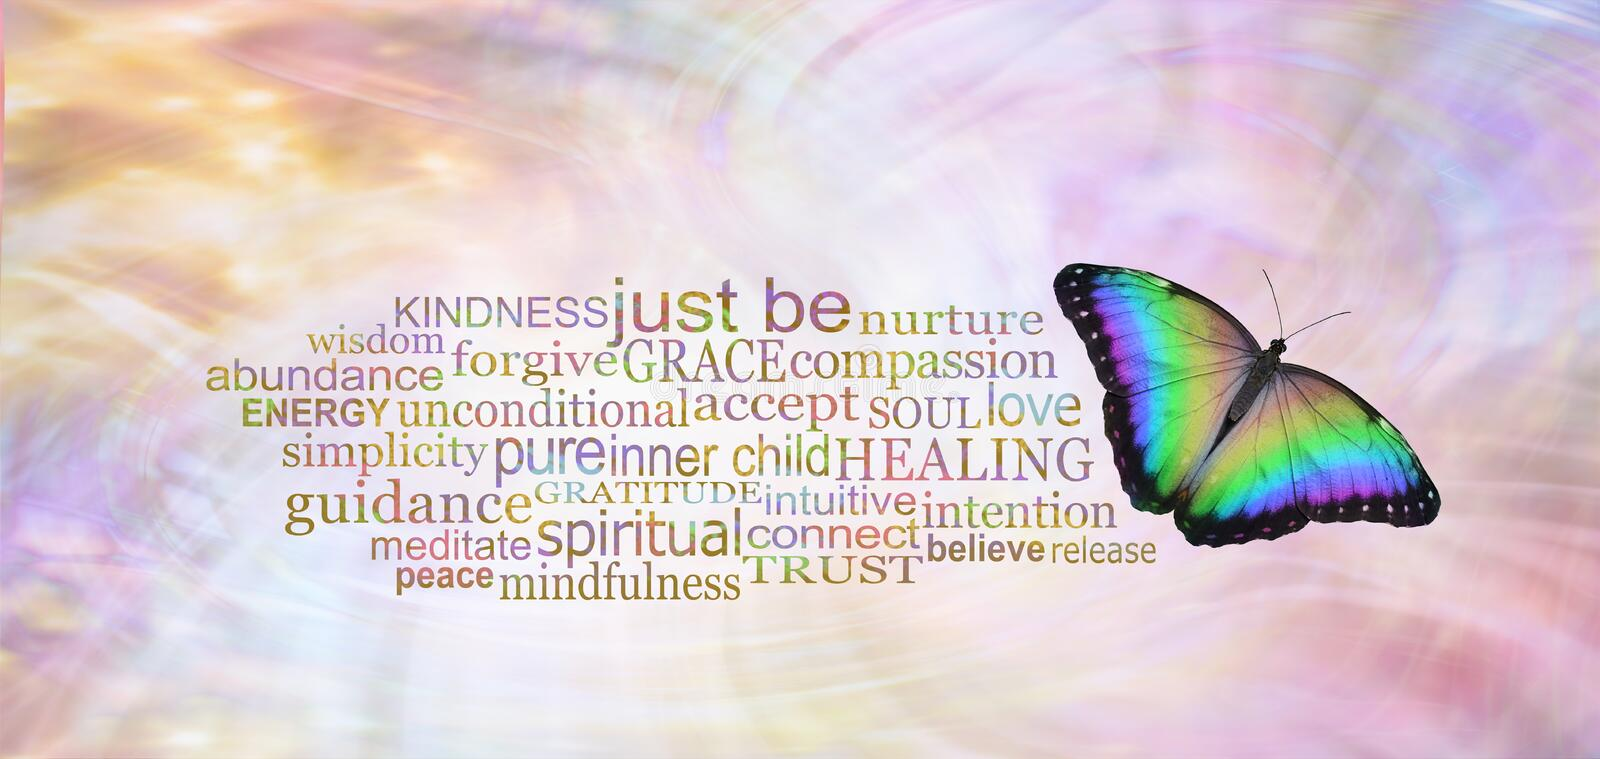 Just Be - Beautiful Butterfly Word Cloud. Simplicity - a beautiful multicoloured open wing butterfly beside a JUST BE word tag cloud on a wispy ethereal energy stock photo